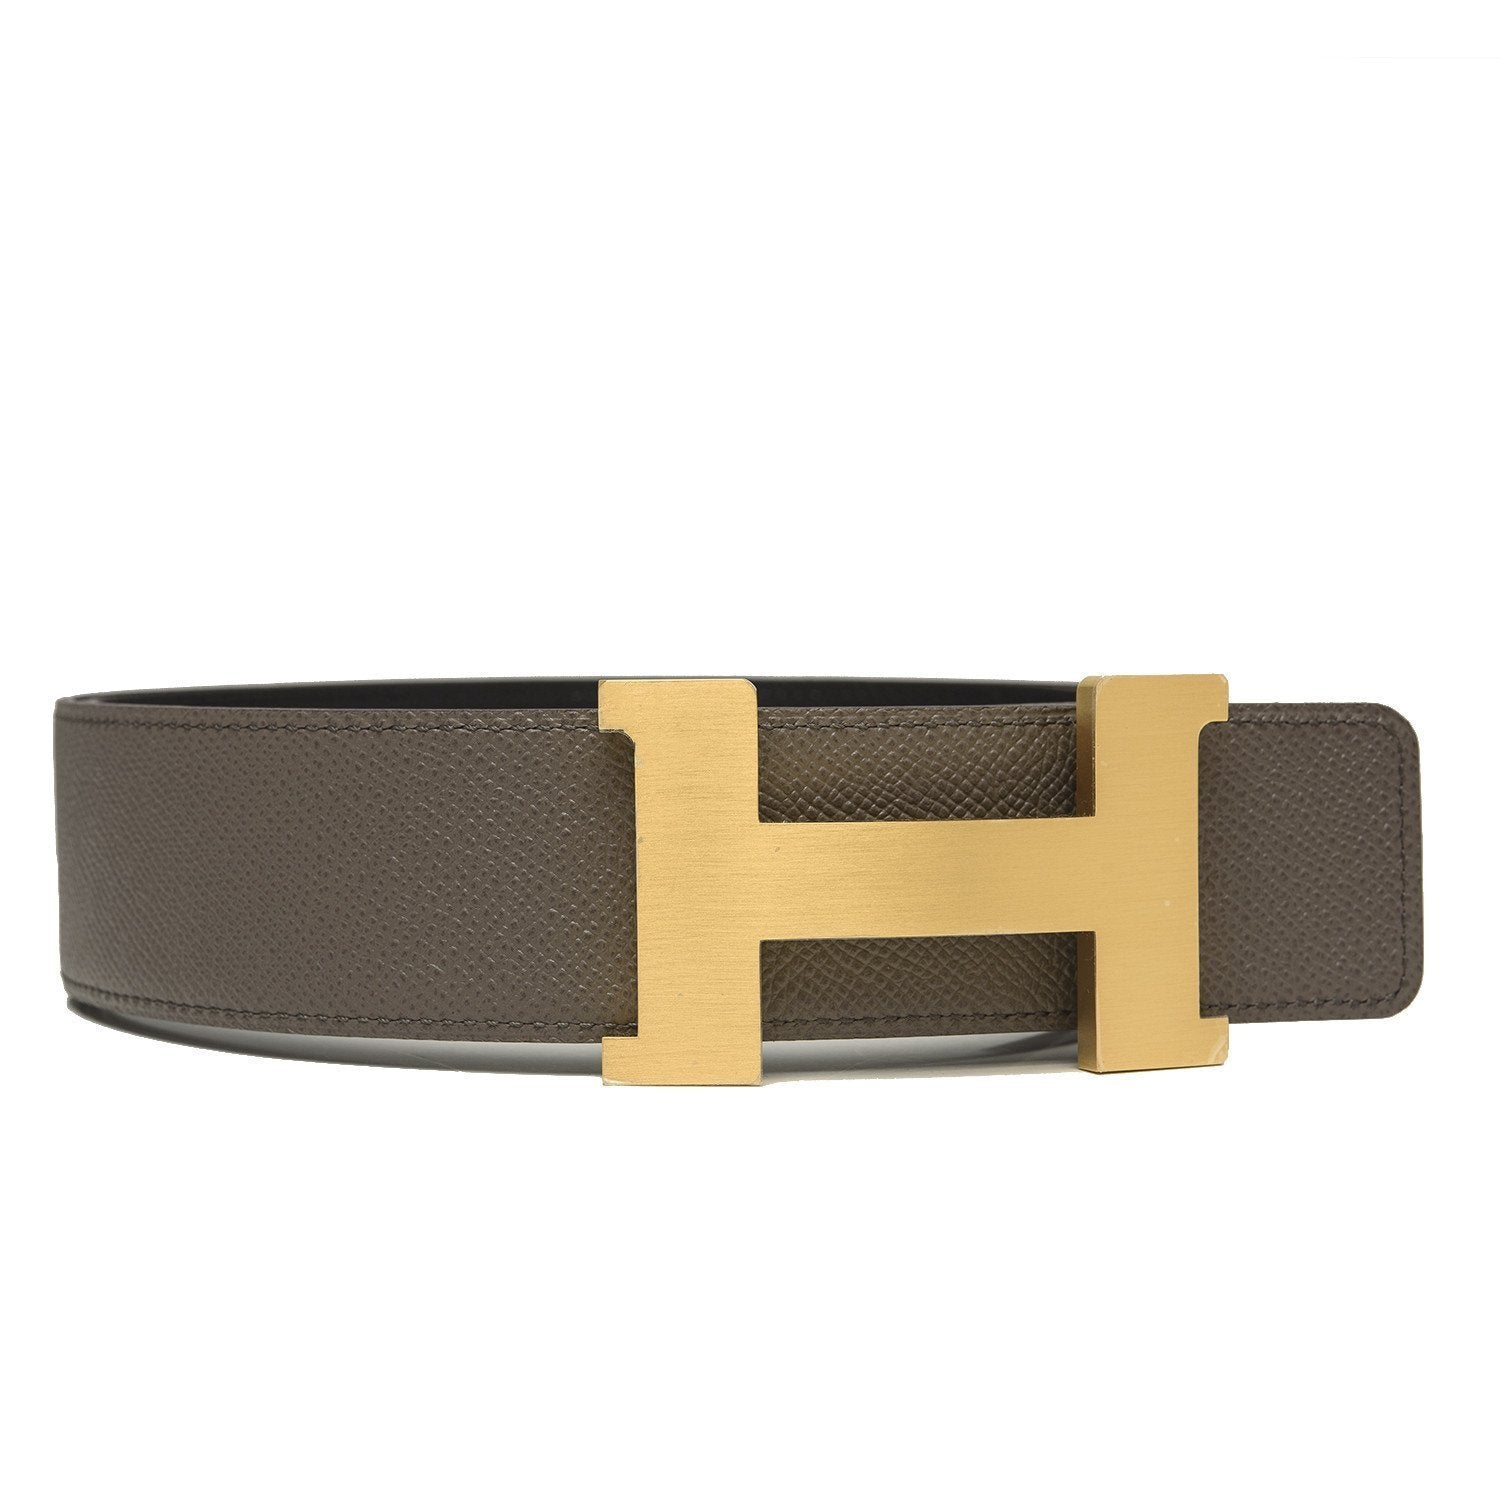 Hermes 42Mm Reversible Blacketain Constance H Belt 90Cm Brushed Gold Buckle Accessories